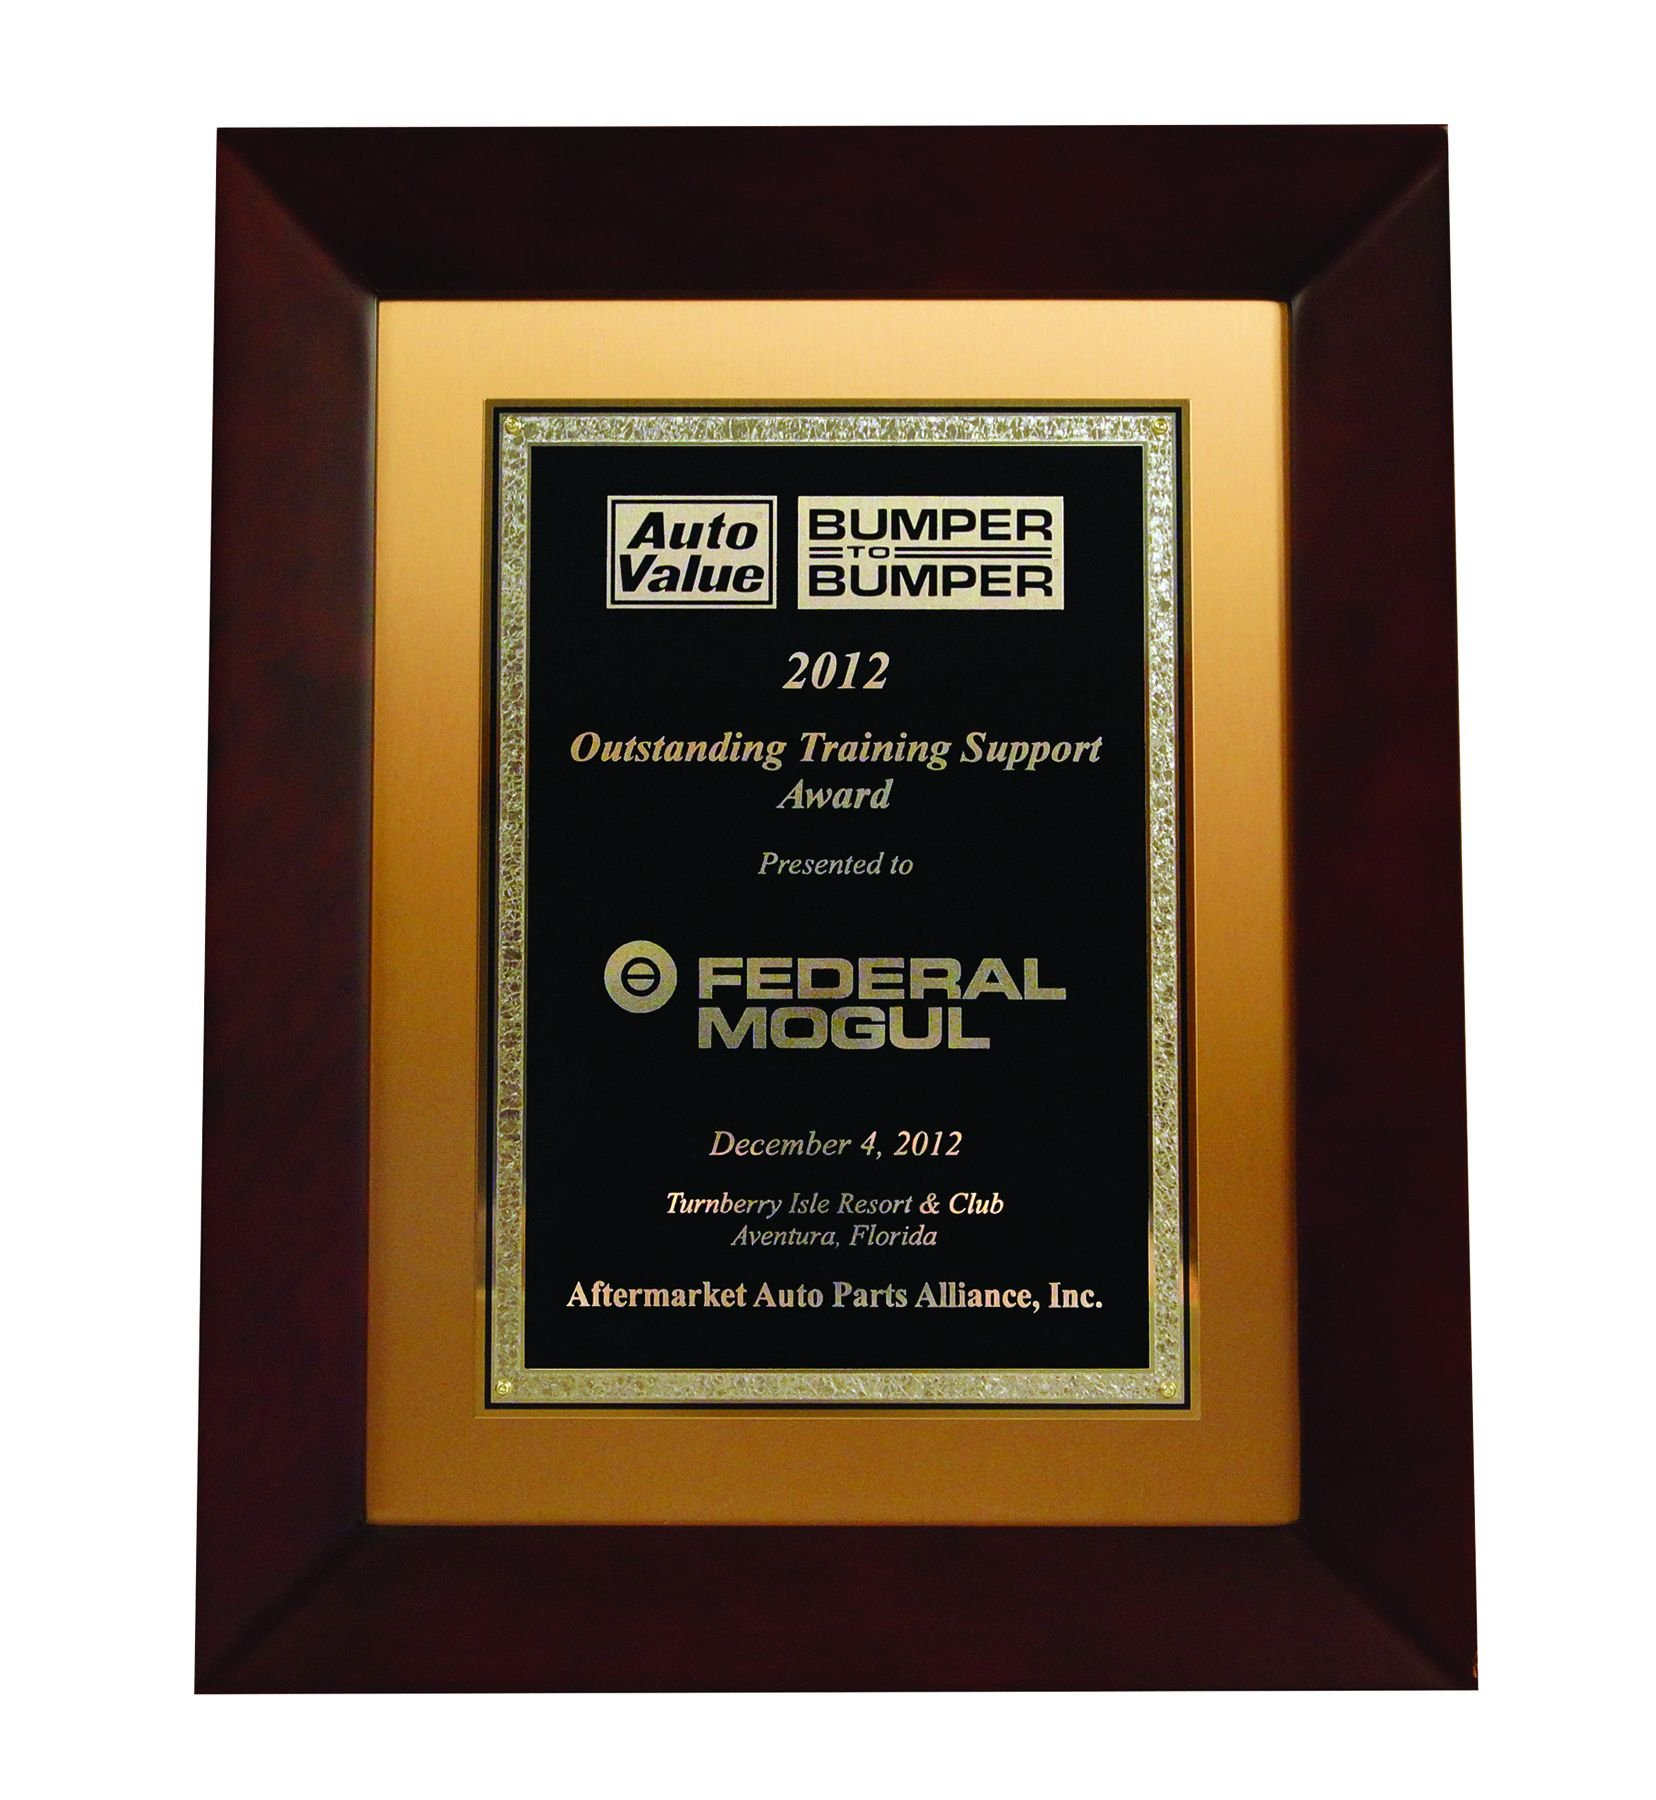 Federal-Mogul recognized for outstanding training